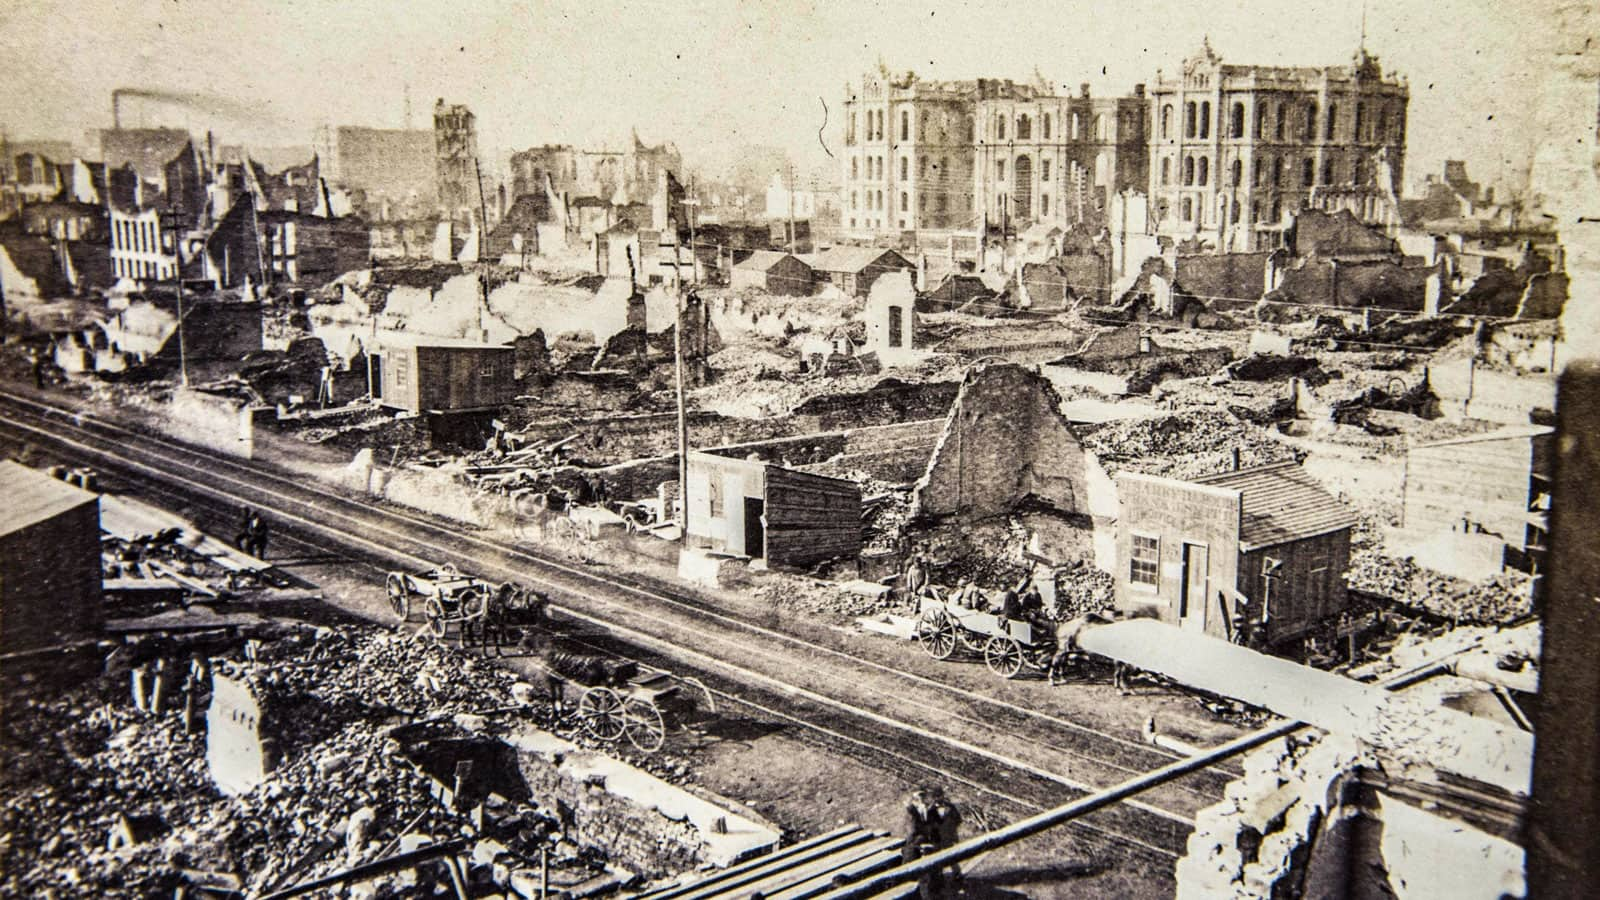 Ruins of buildings in Chicago after the Great Chicago Fire